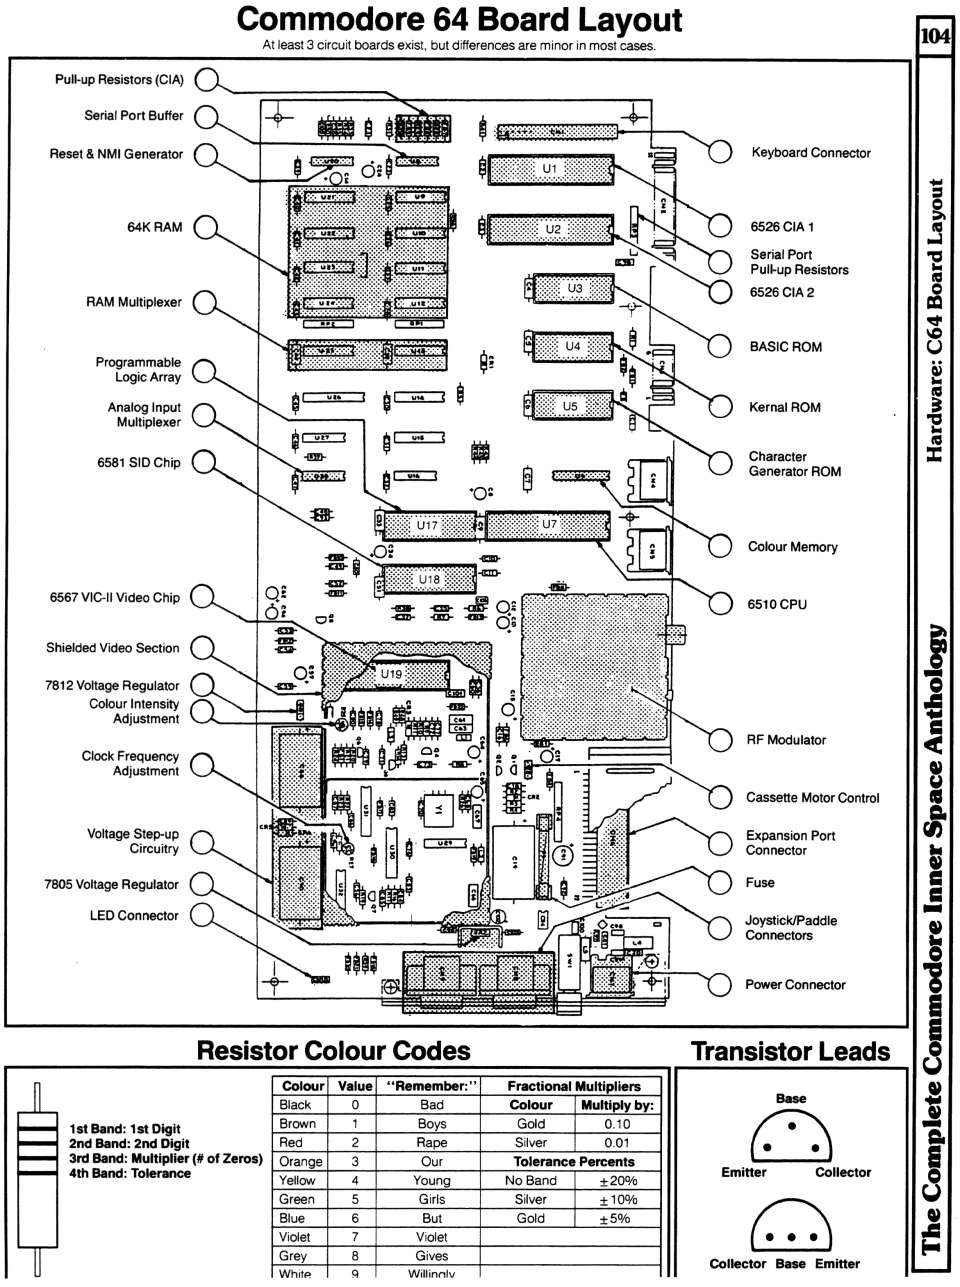 [960�1287 Hardware Section: Commodore 64 Board Layout, Resistor Colour Codes, Transistor Lead Assignments]